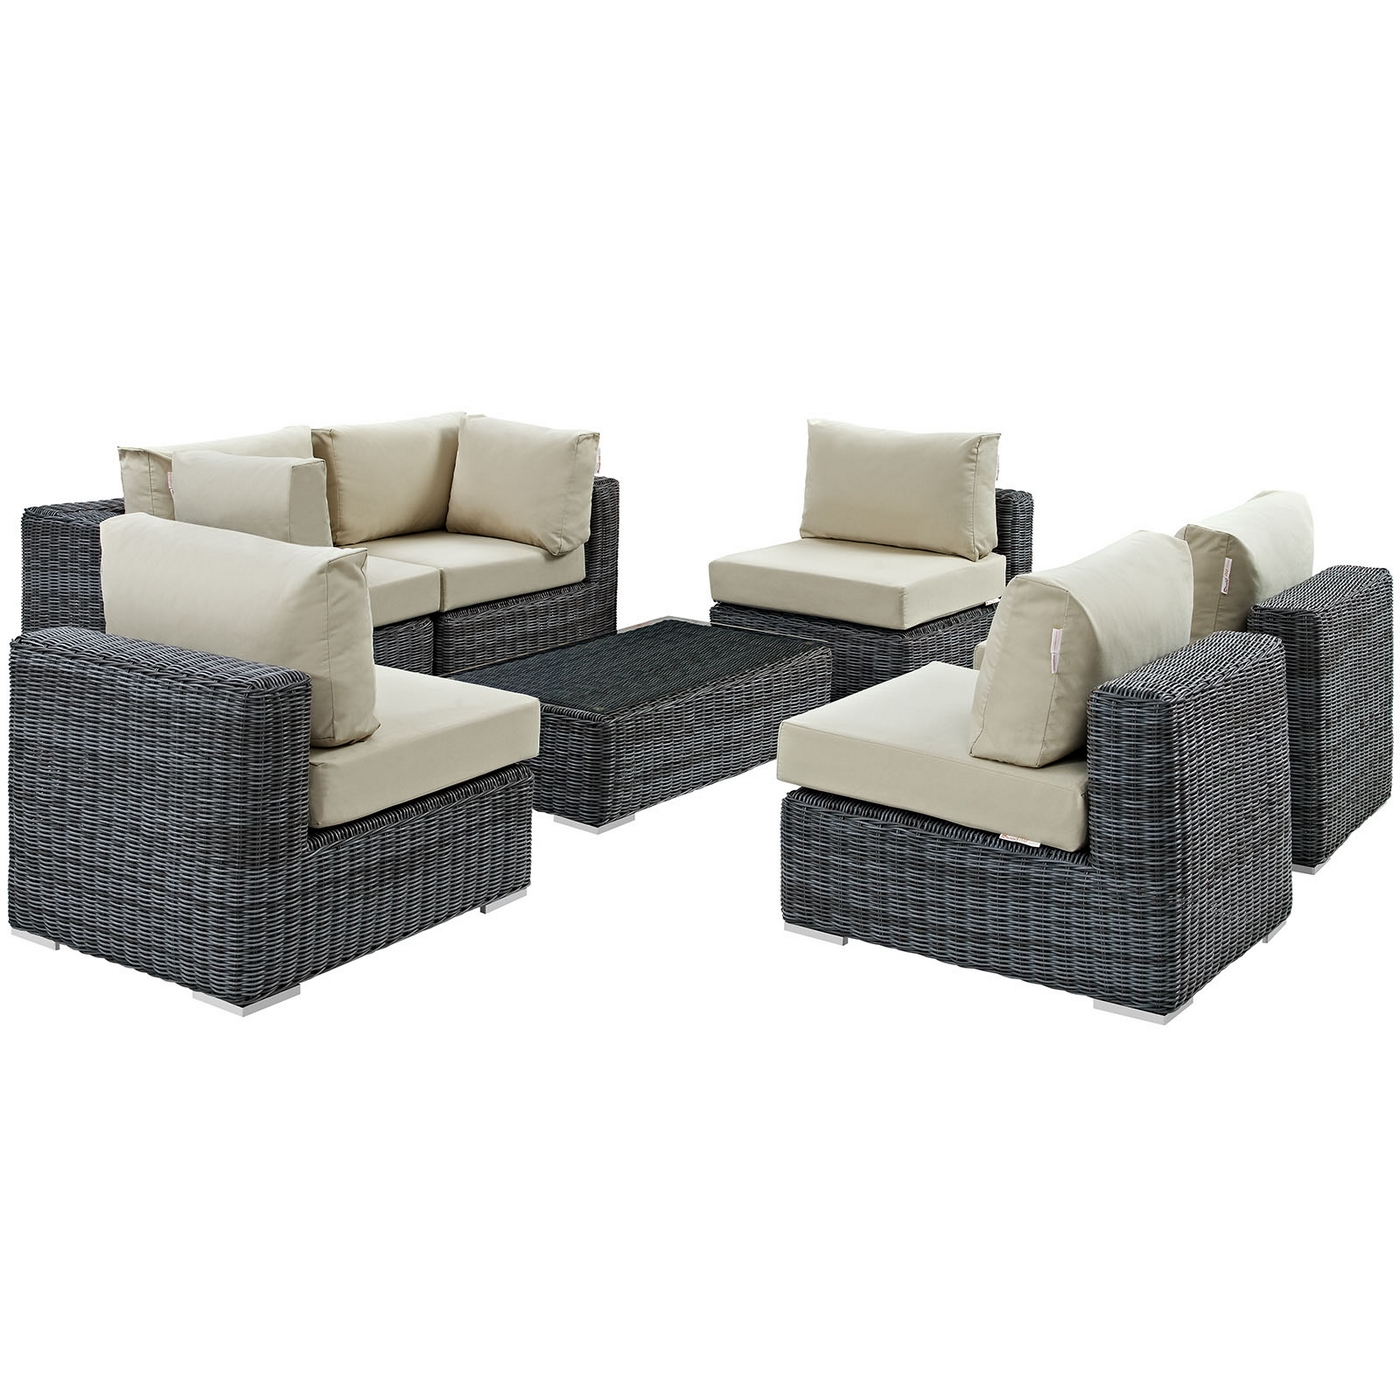 Amazing Summon Rattan 7 Piece Outdoor Sunbrella Sectional Sofa Set W Cjindustries Chair Design For Home Cjindustriesco